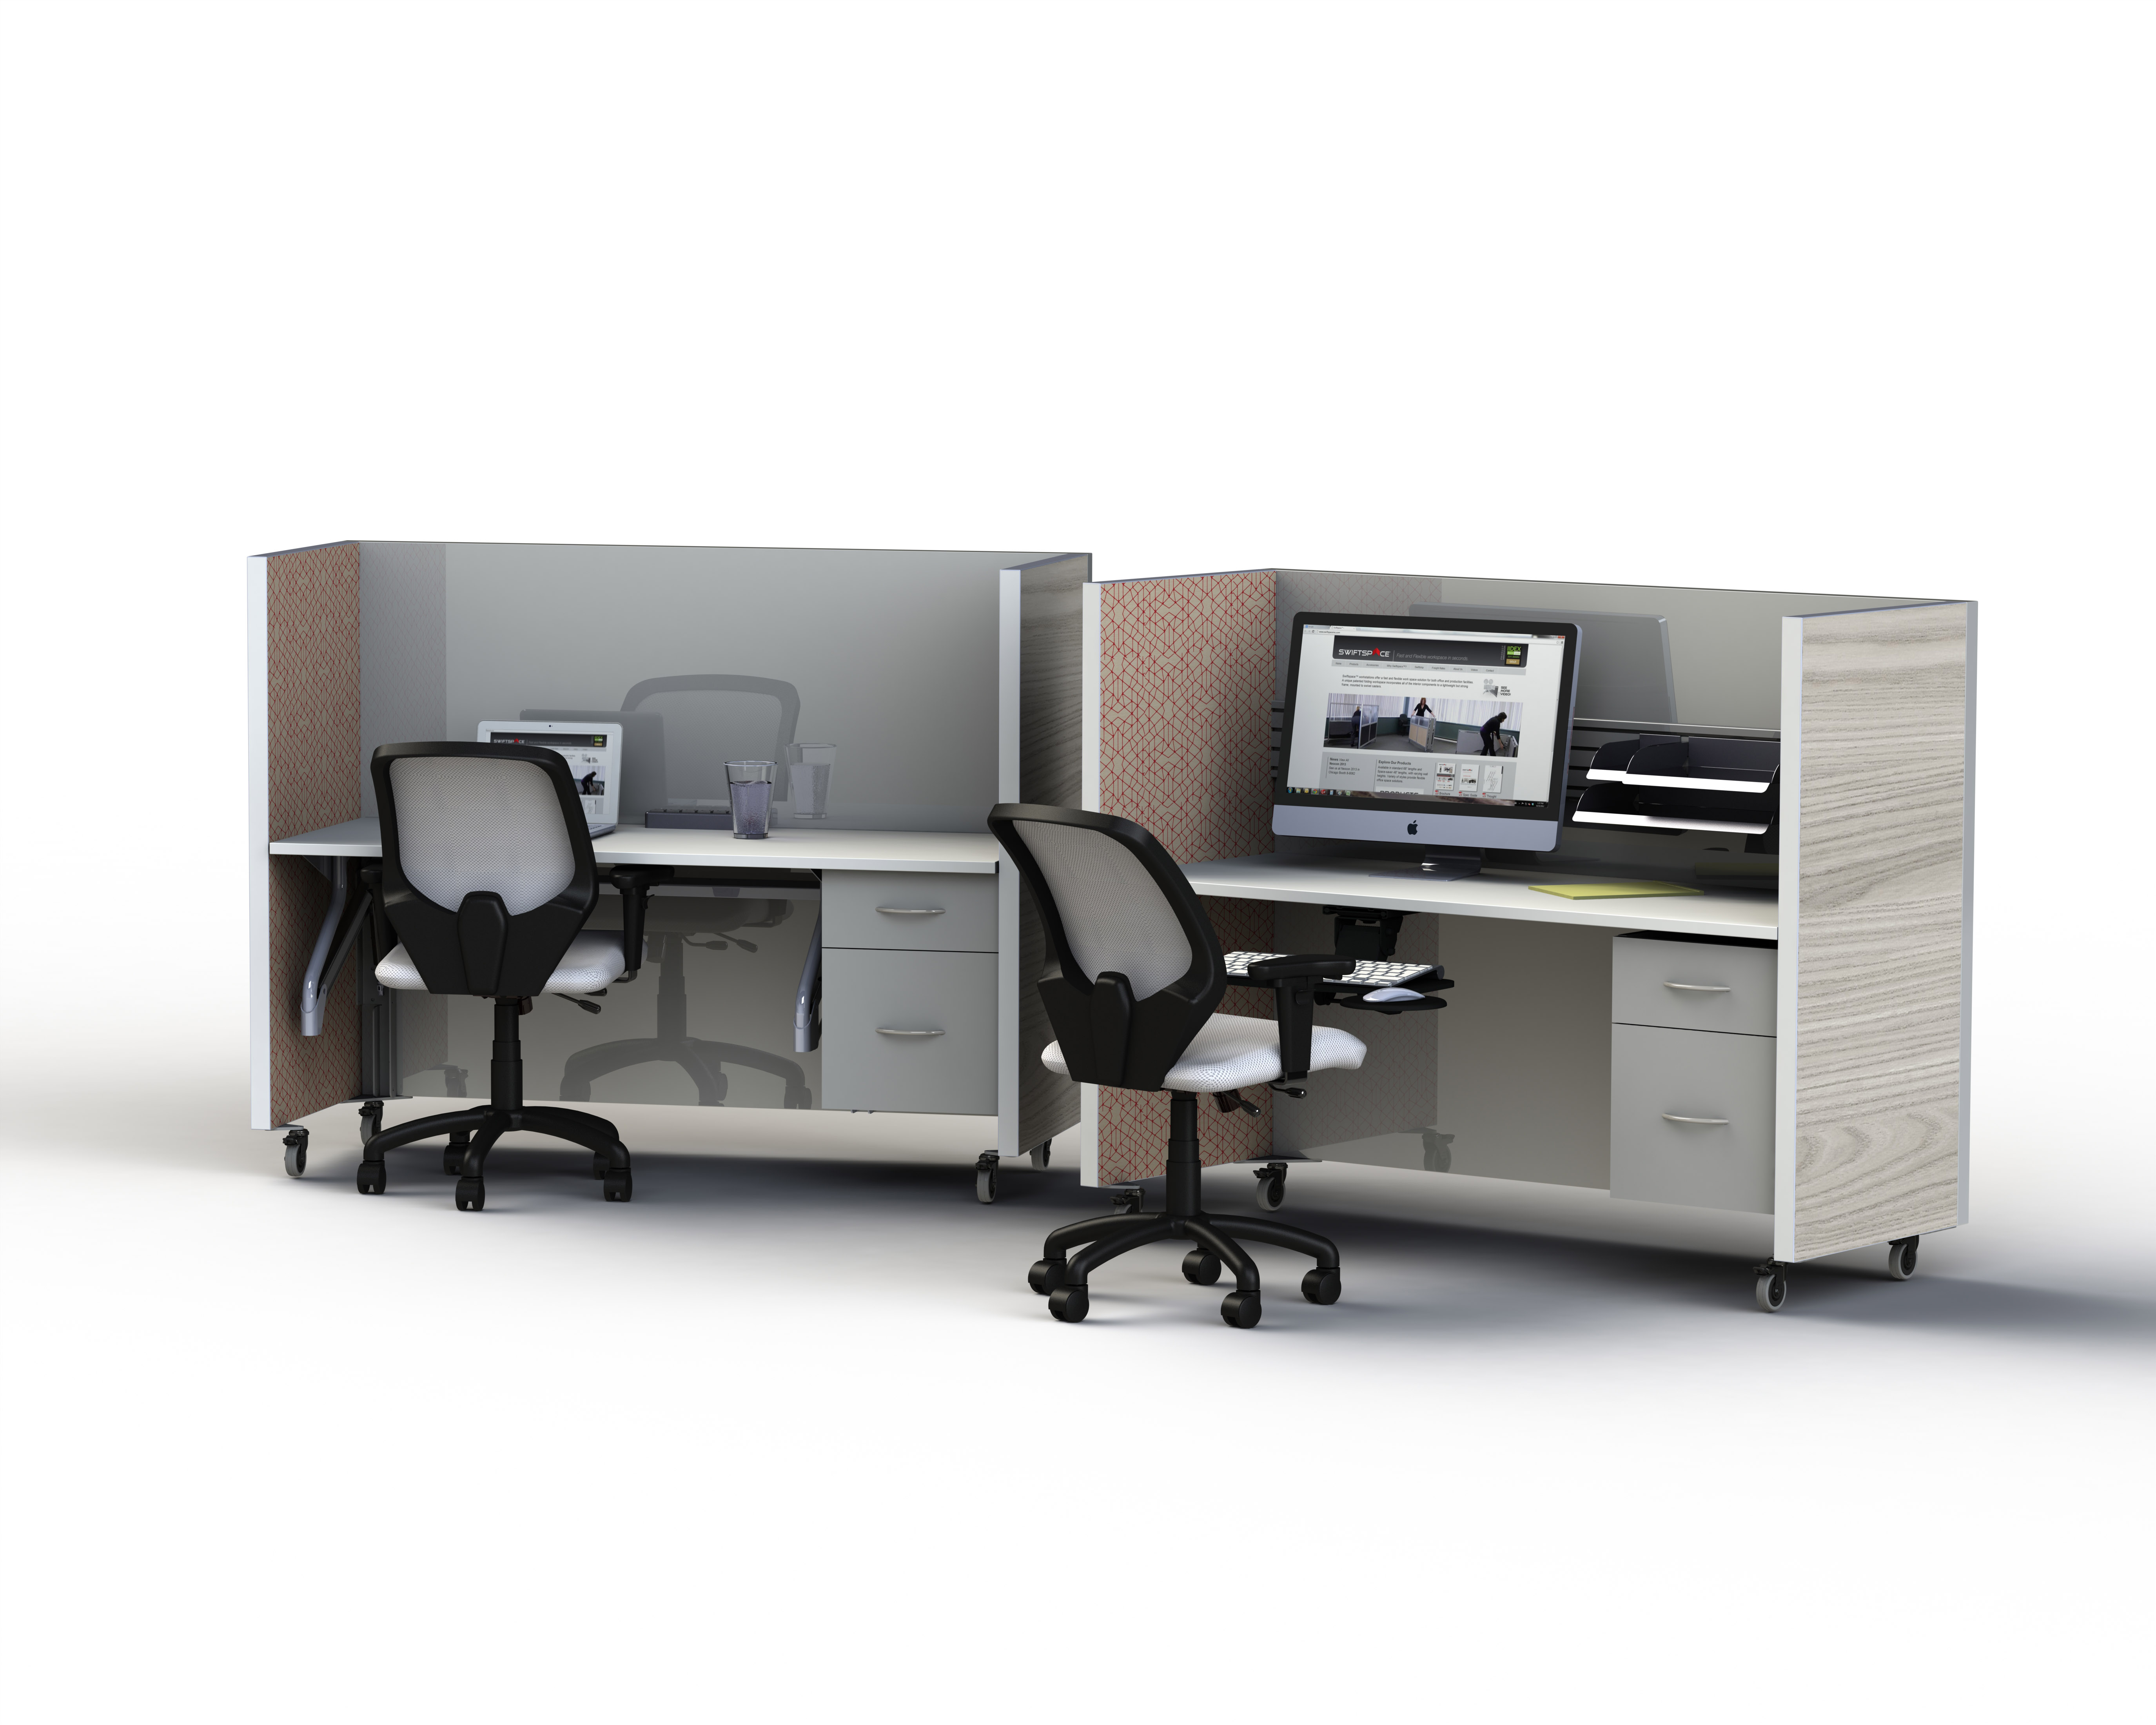 Swiftspace Fused Family-adjustable